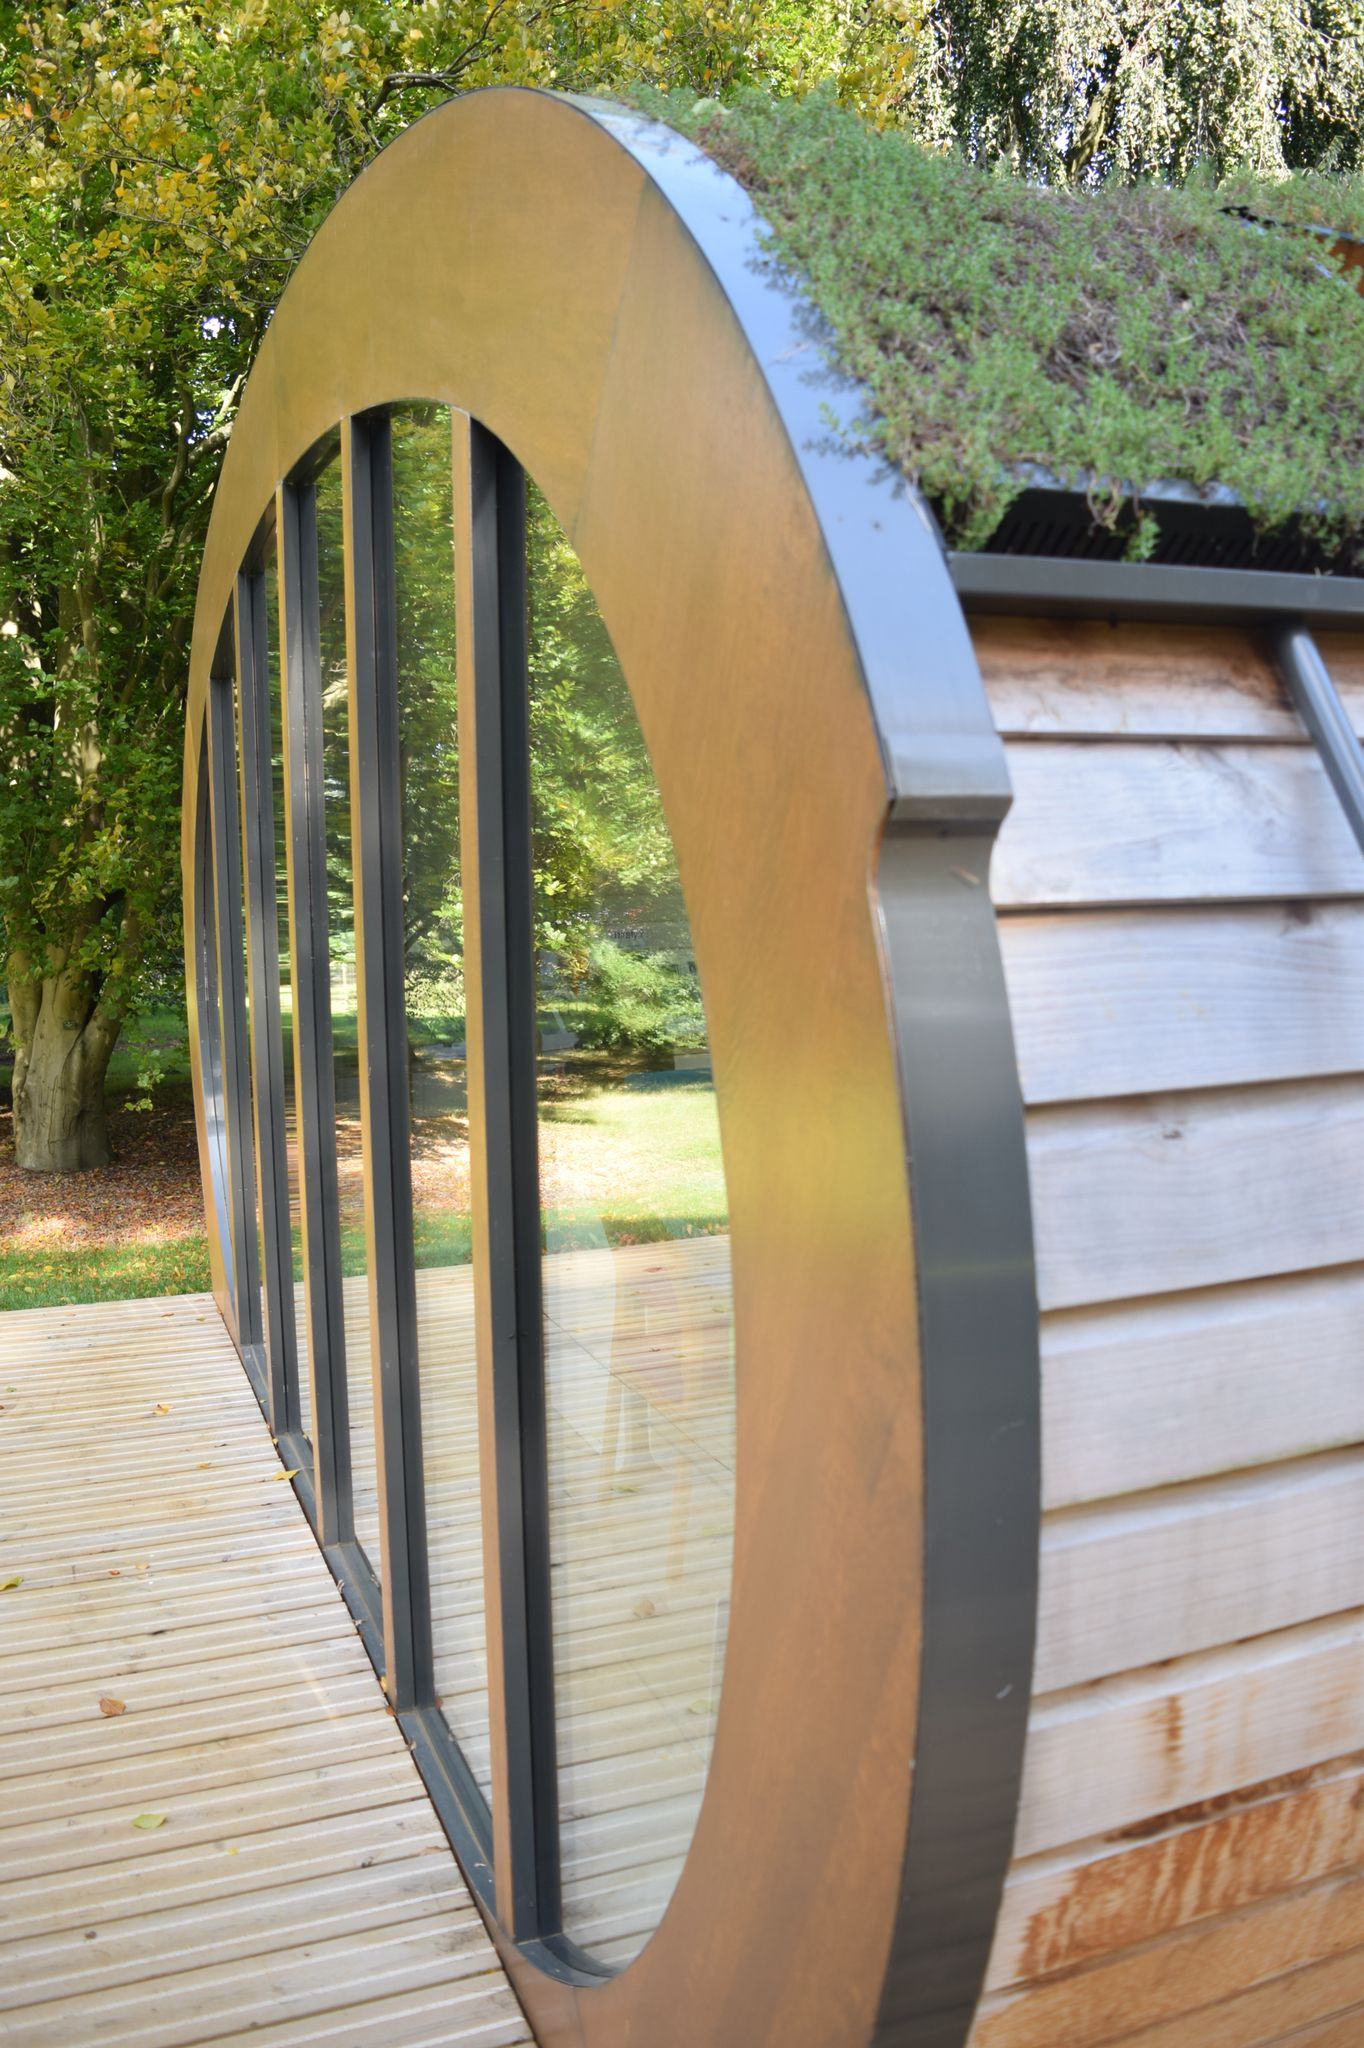 Love this pod with natural roof and reflections at Harcourt Arboretum